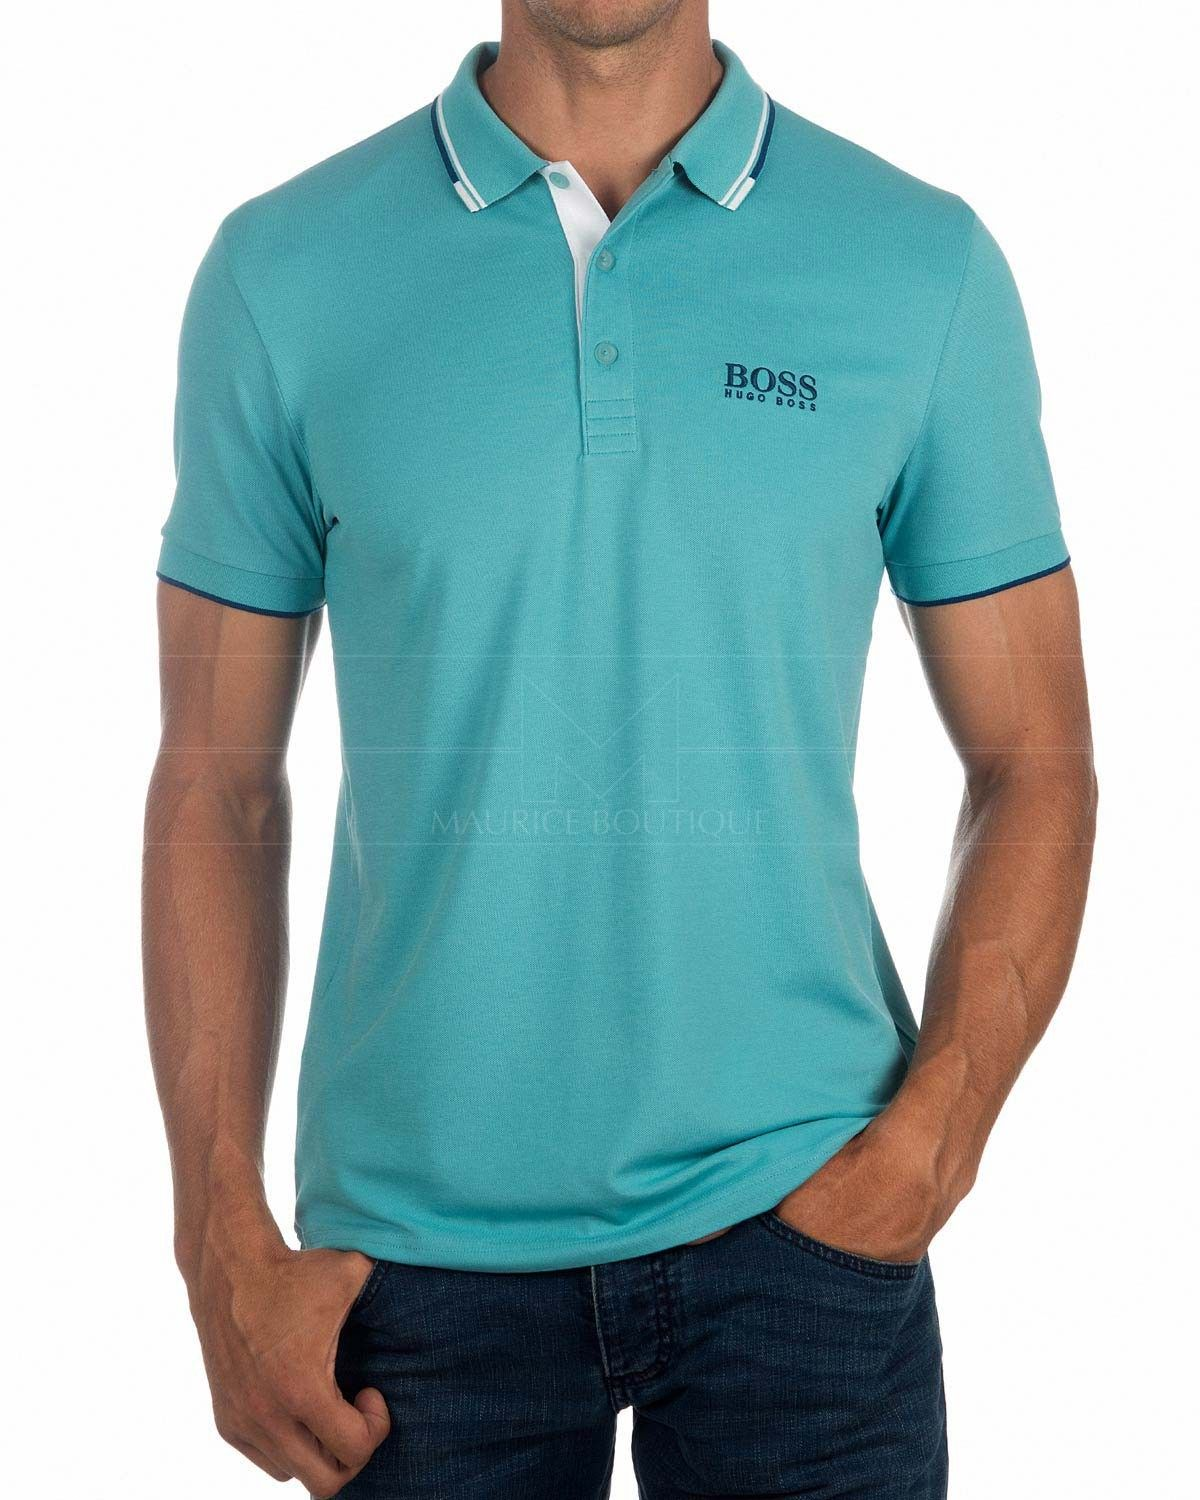 Best Price Hugo Boss Polo Shirts